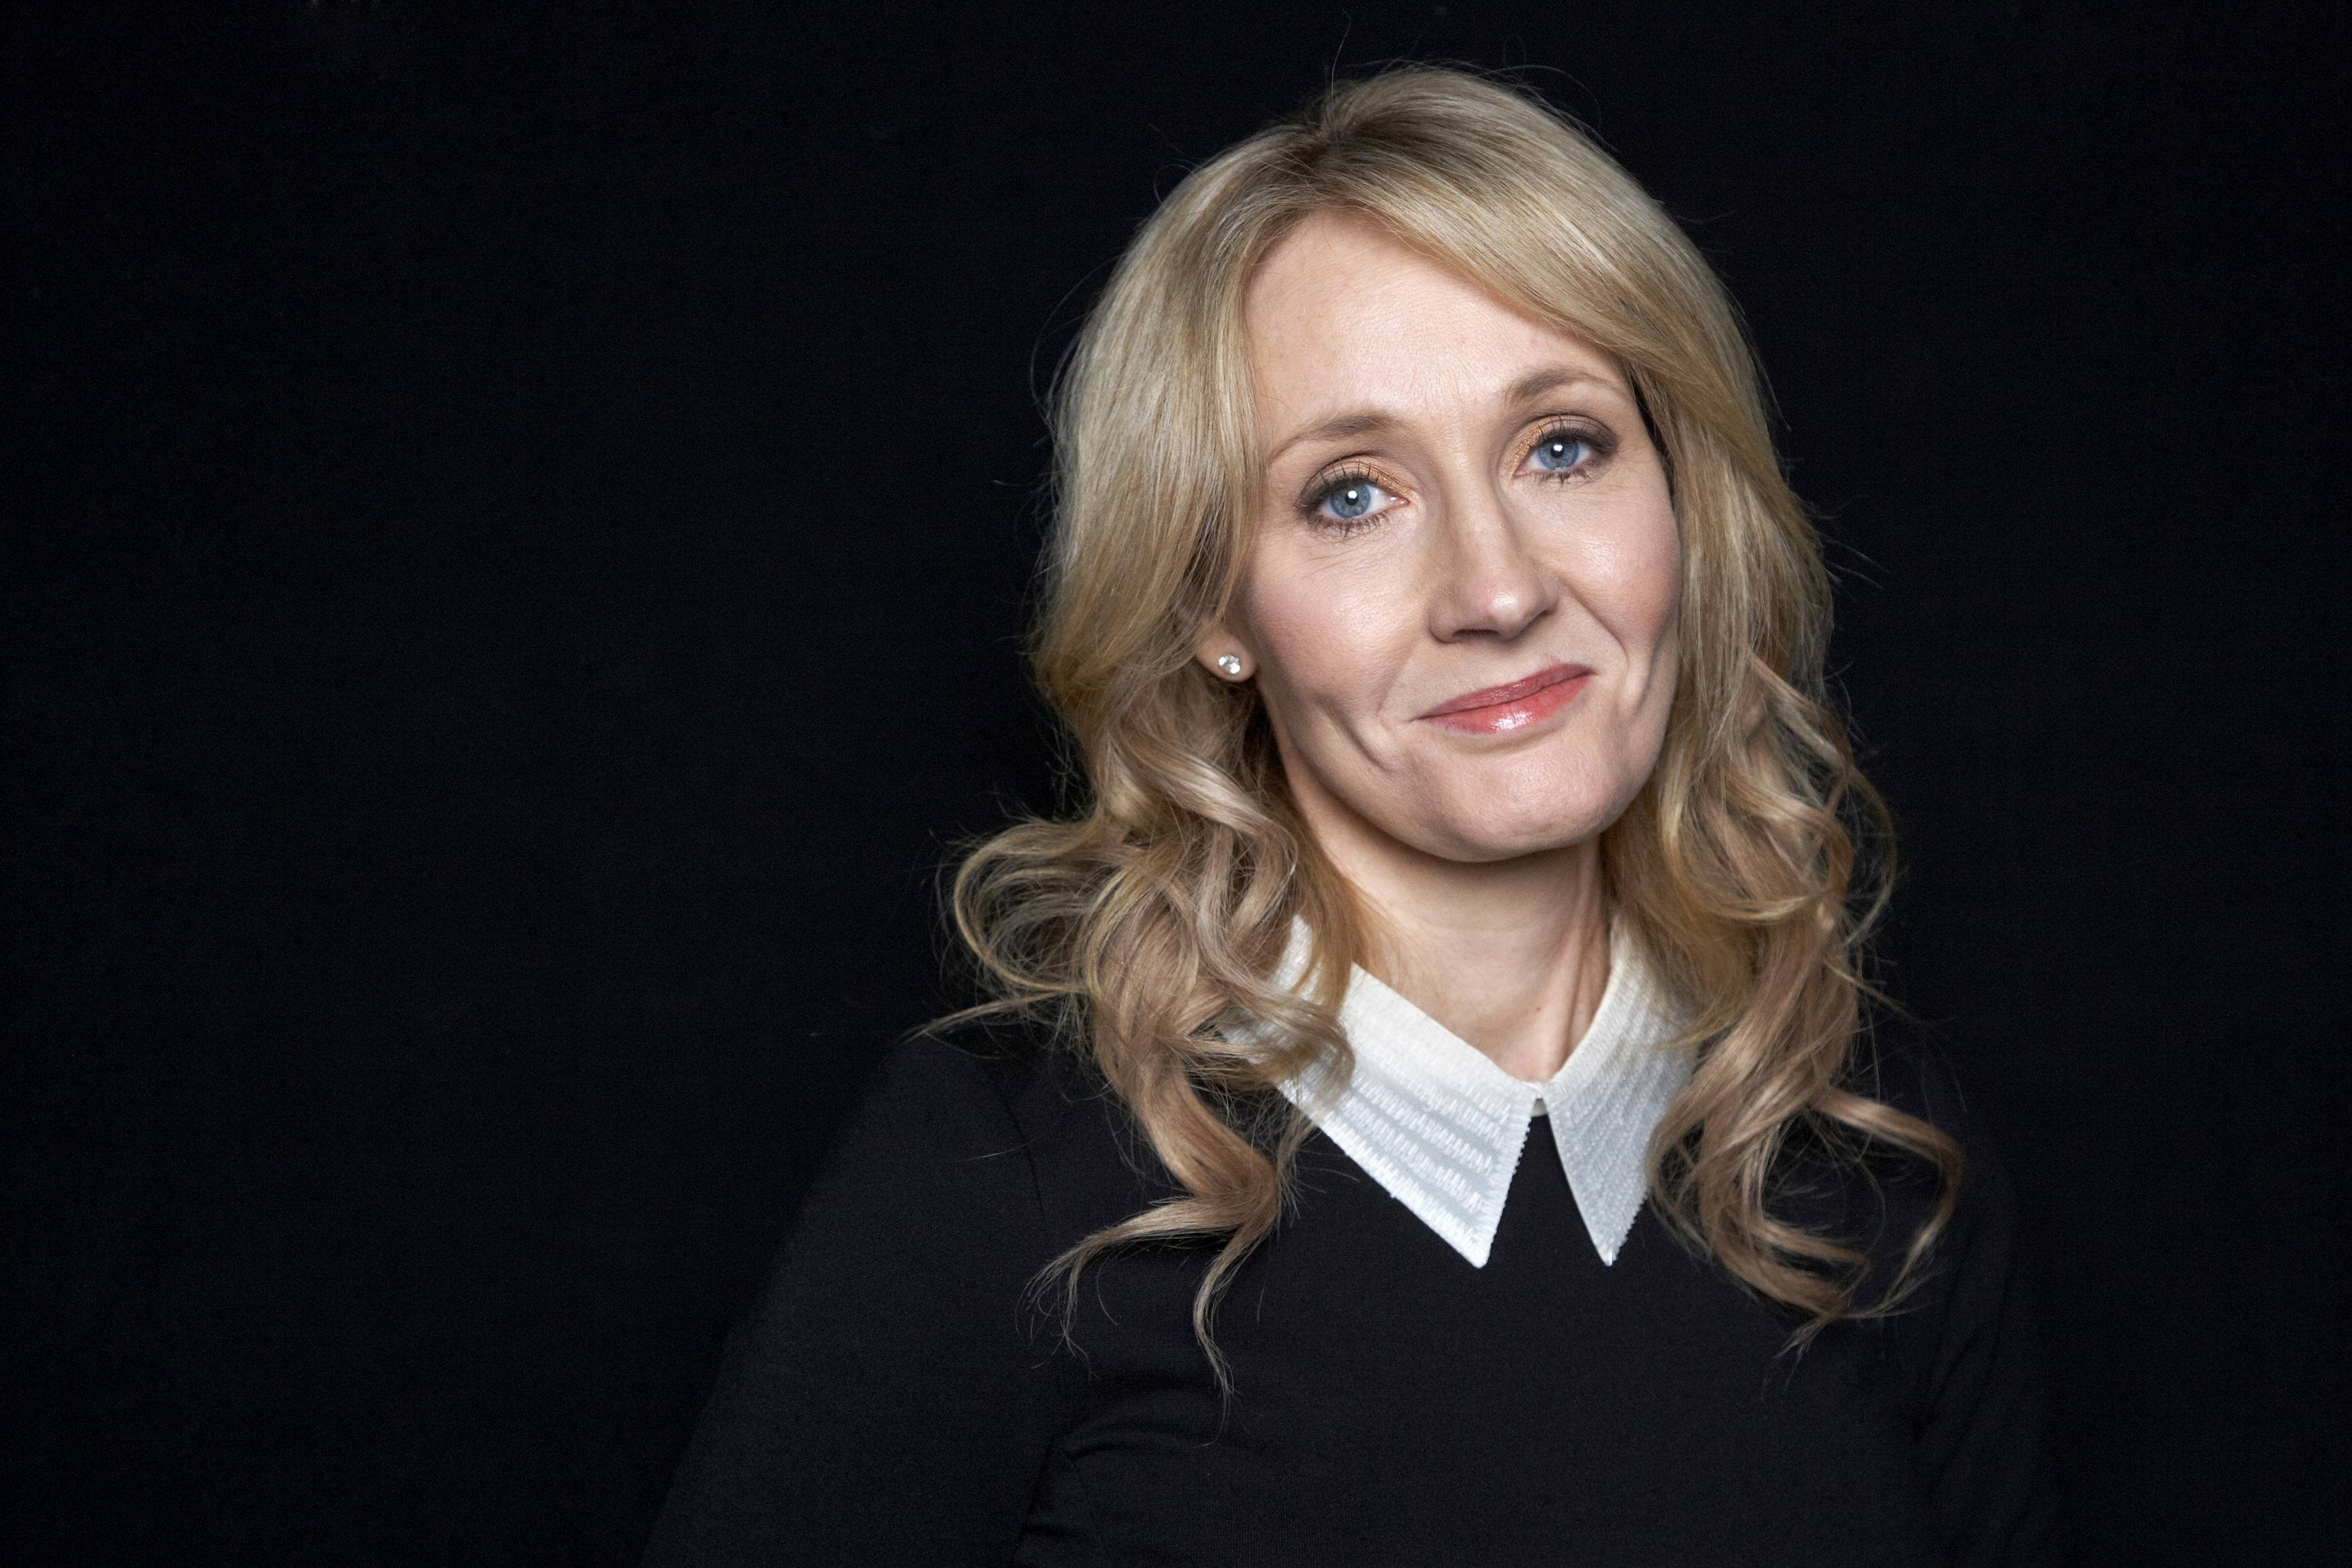 Harry Potter fans can look forward to a Halloween treat, with some tricks, from J.K. Rowling. In an announcement posted Friday on pottermore.com, the author revealed that she has prepared a 1,700-word story about the witch and former Hogwarts professor Dolores Umbridge.